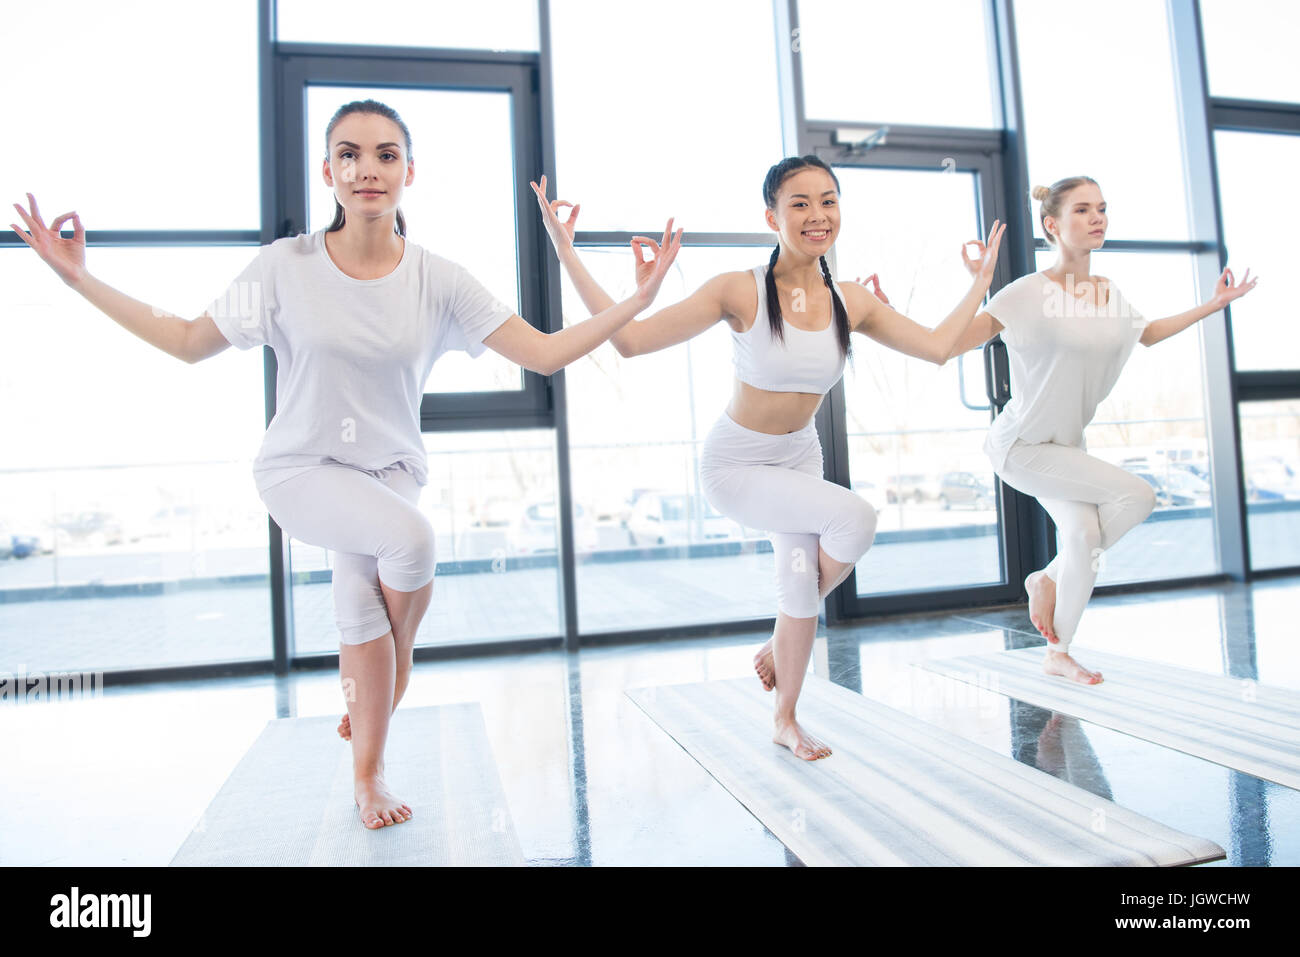 Smiling young women practising Garudasana Eagle Pose at yoga class - Stock Image